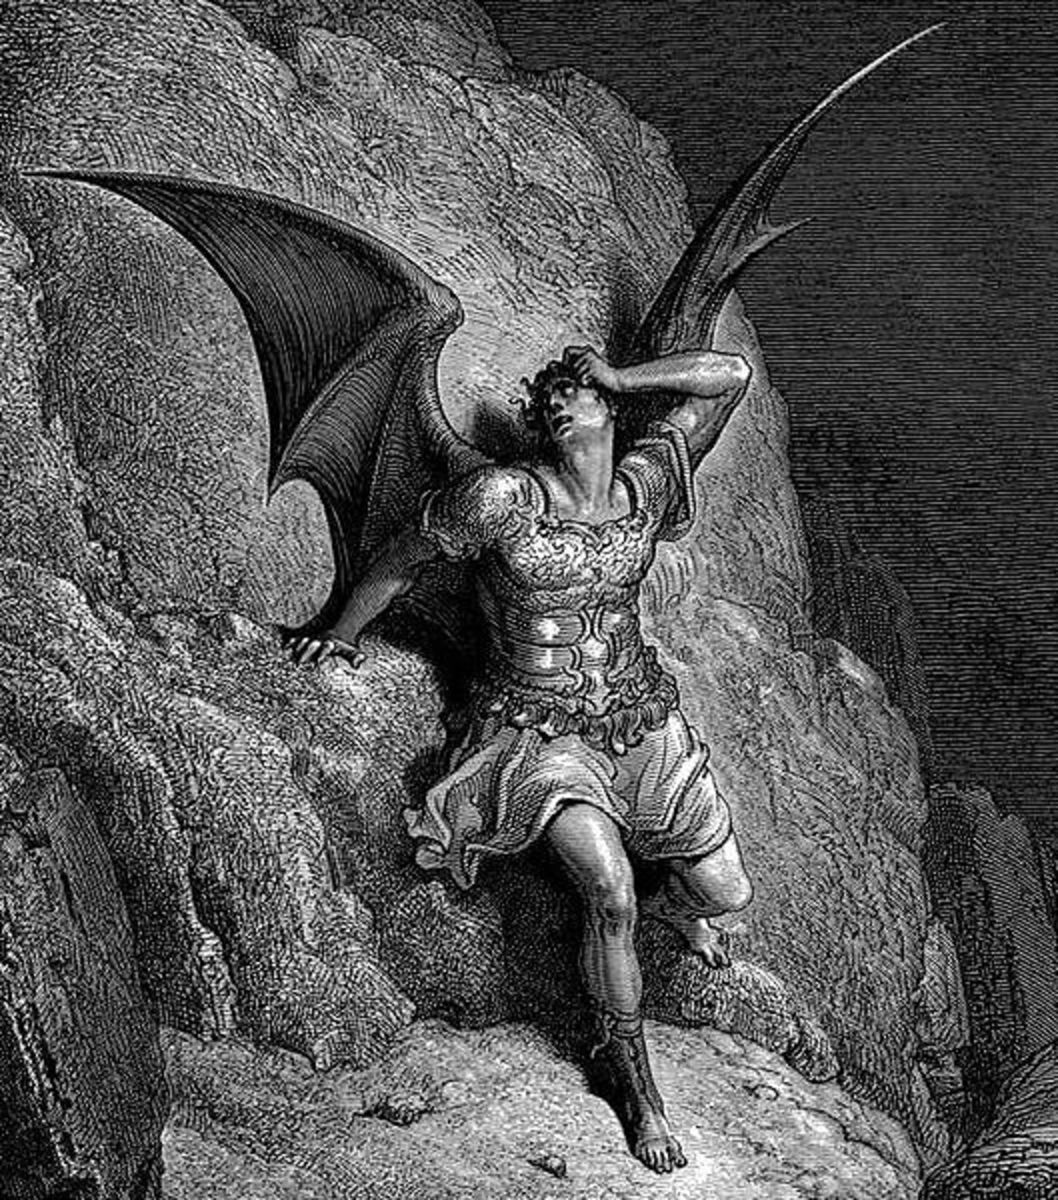 Satan is the most complex emotional character in Paradise Lost.